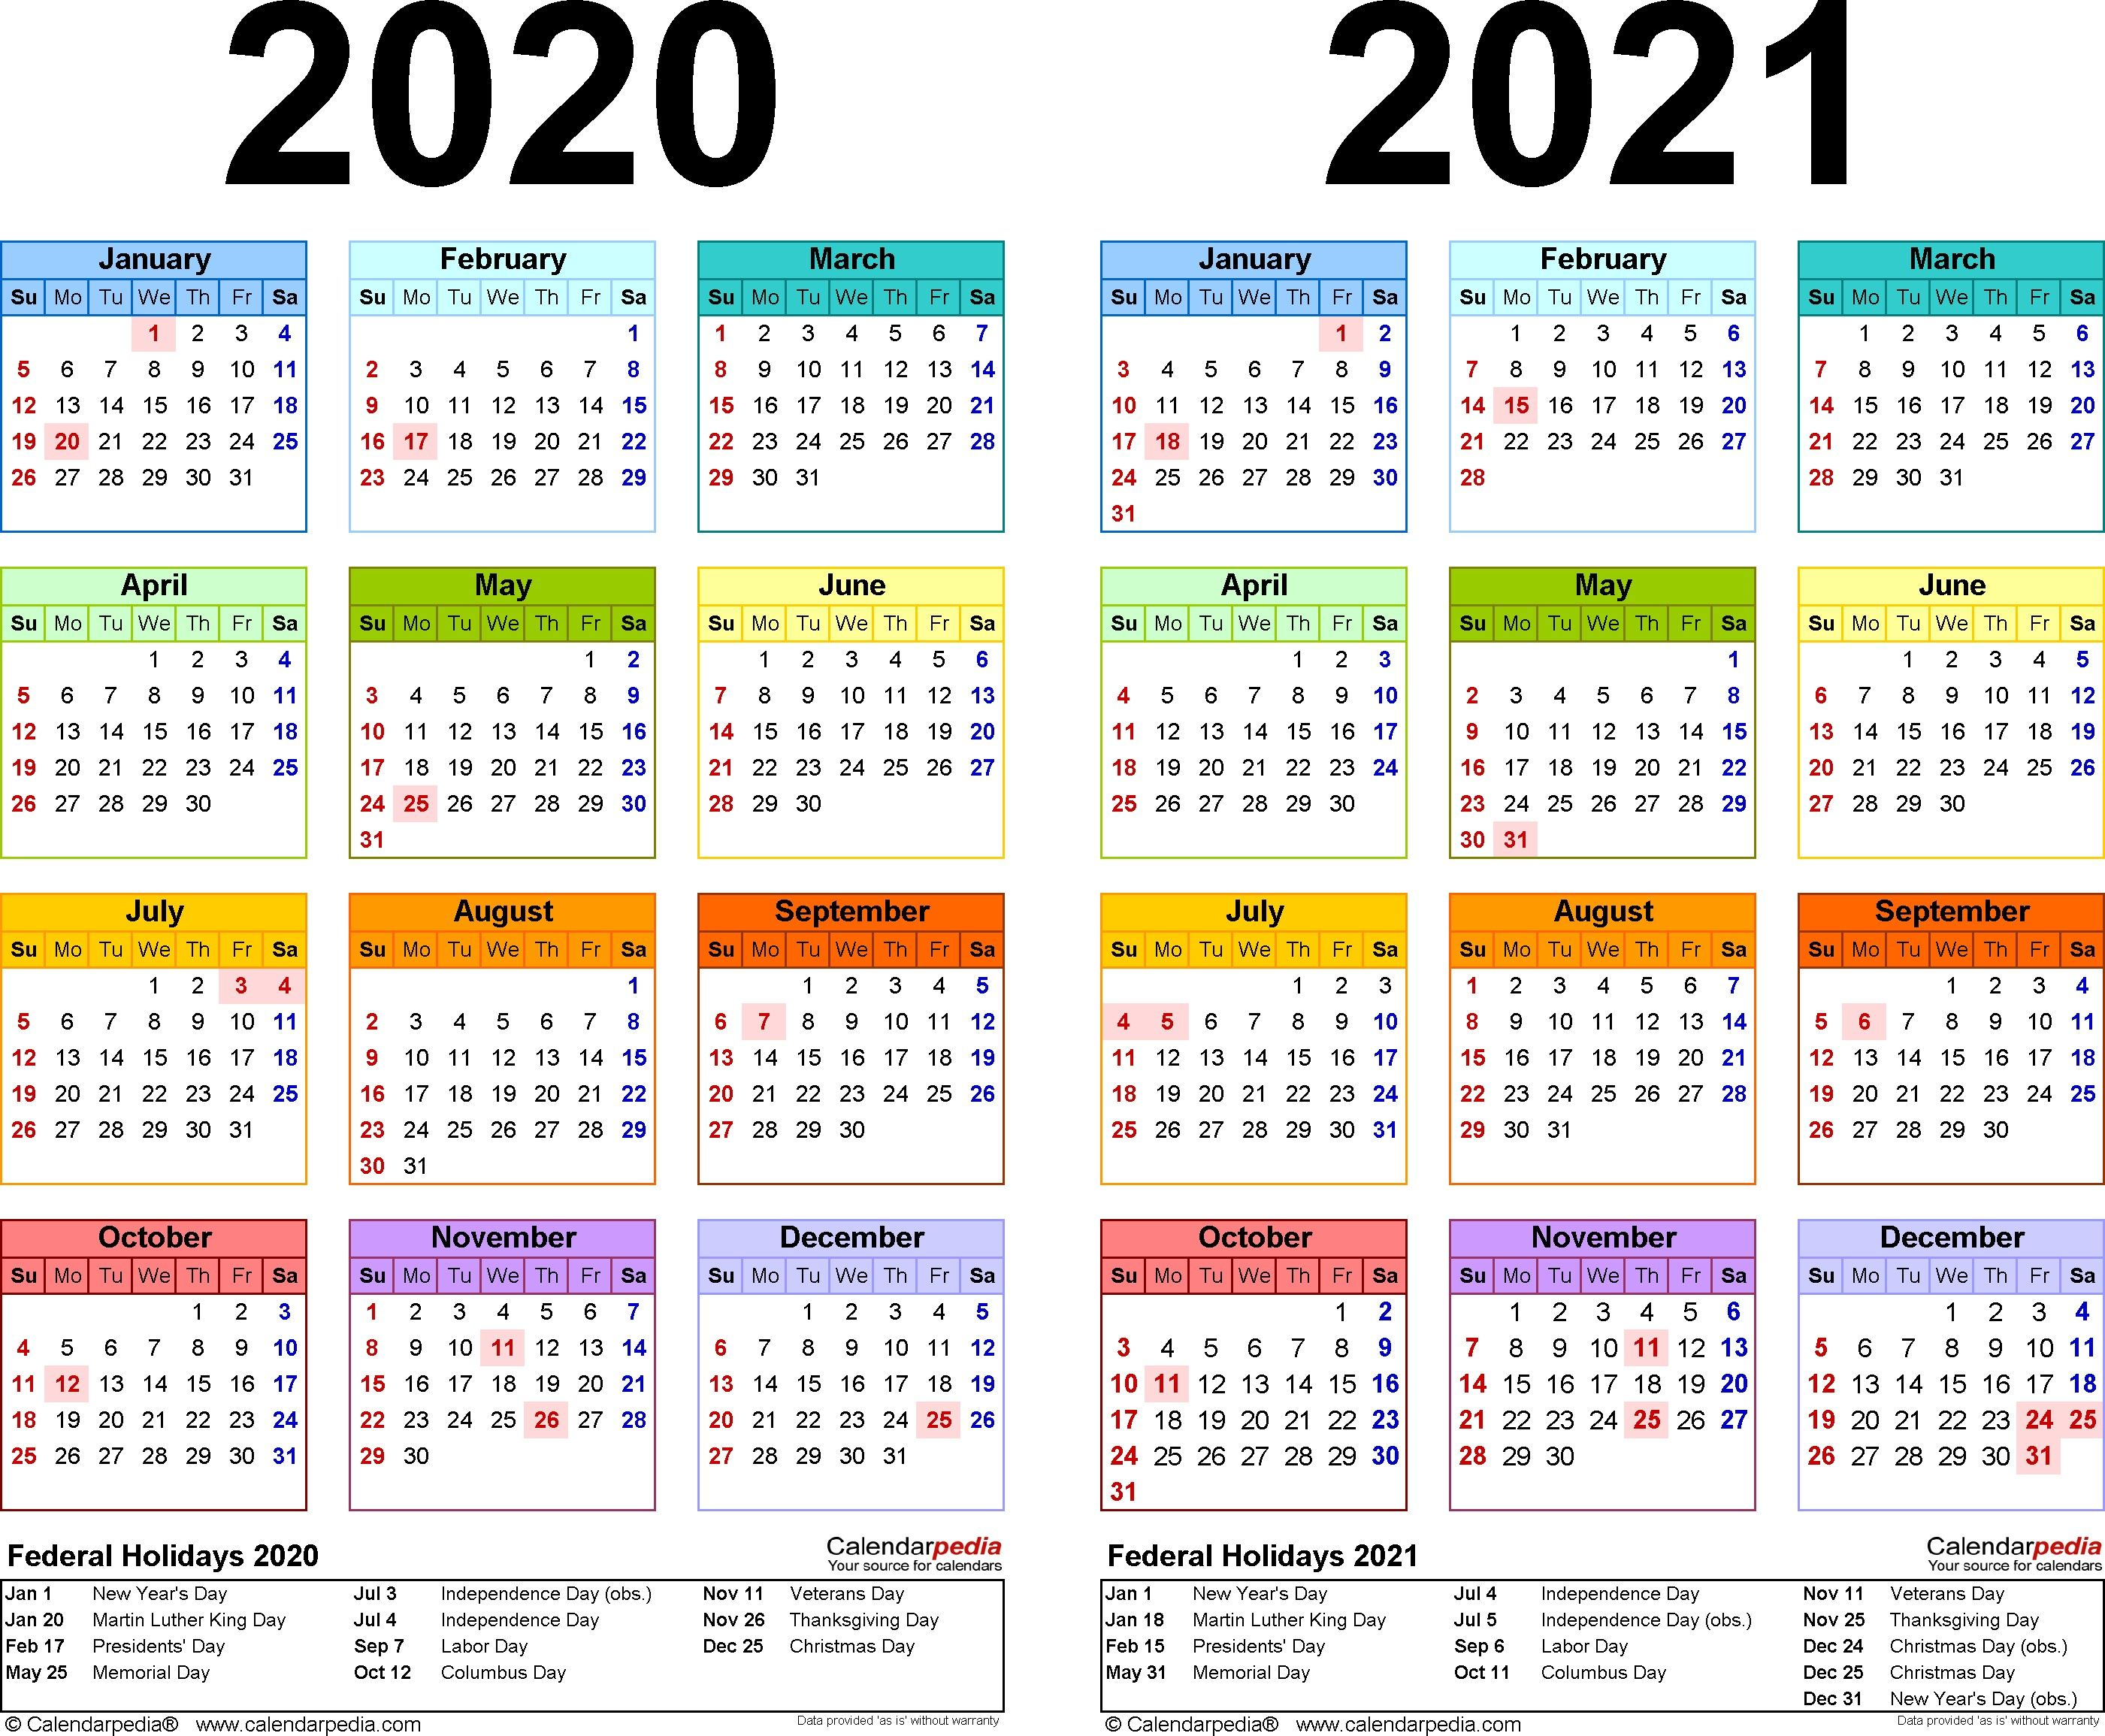 2020 And 2021 School Calendar Printable School Calendar Delightful To Be Able To My Own Website In Th In 2020 Printable Calendar Design Excel Calendar 2021 Calendar